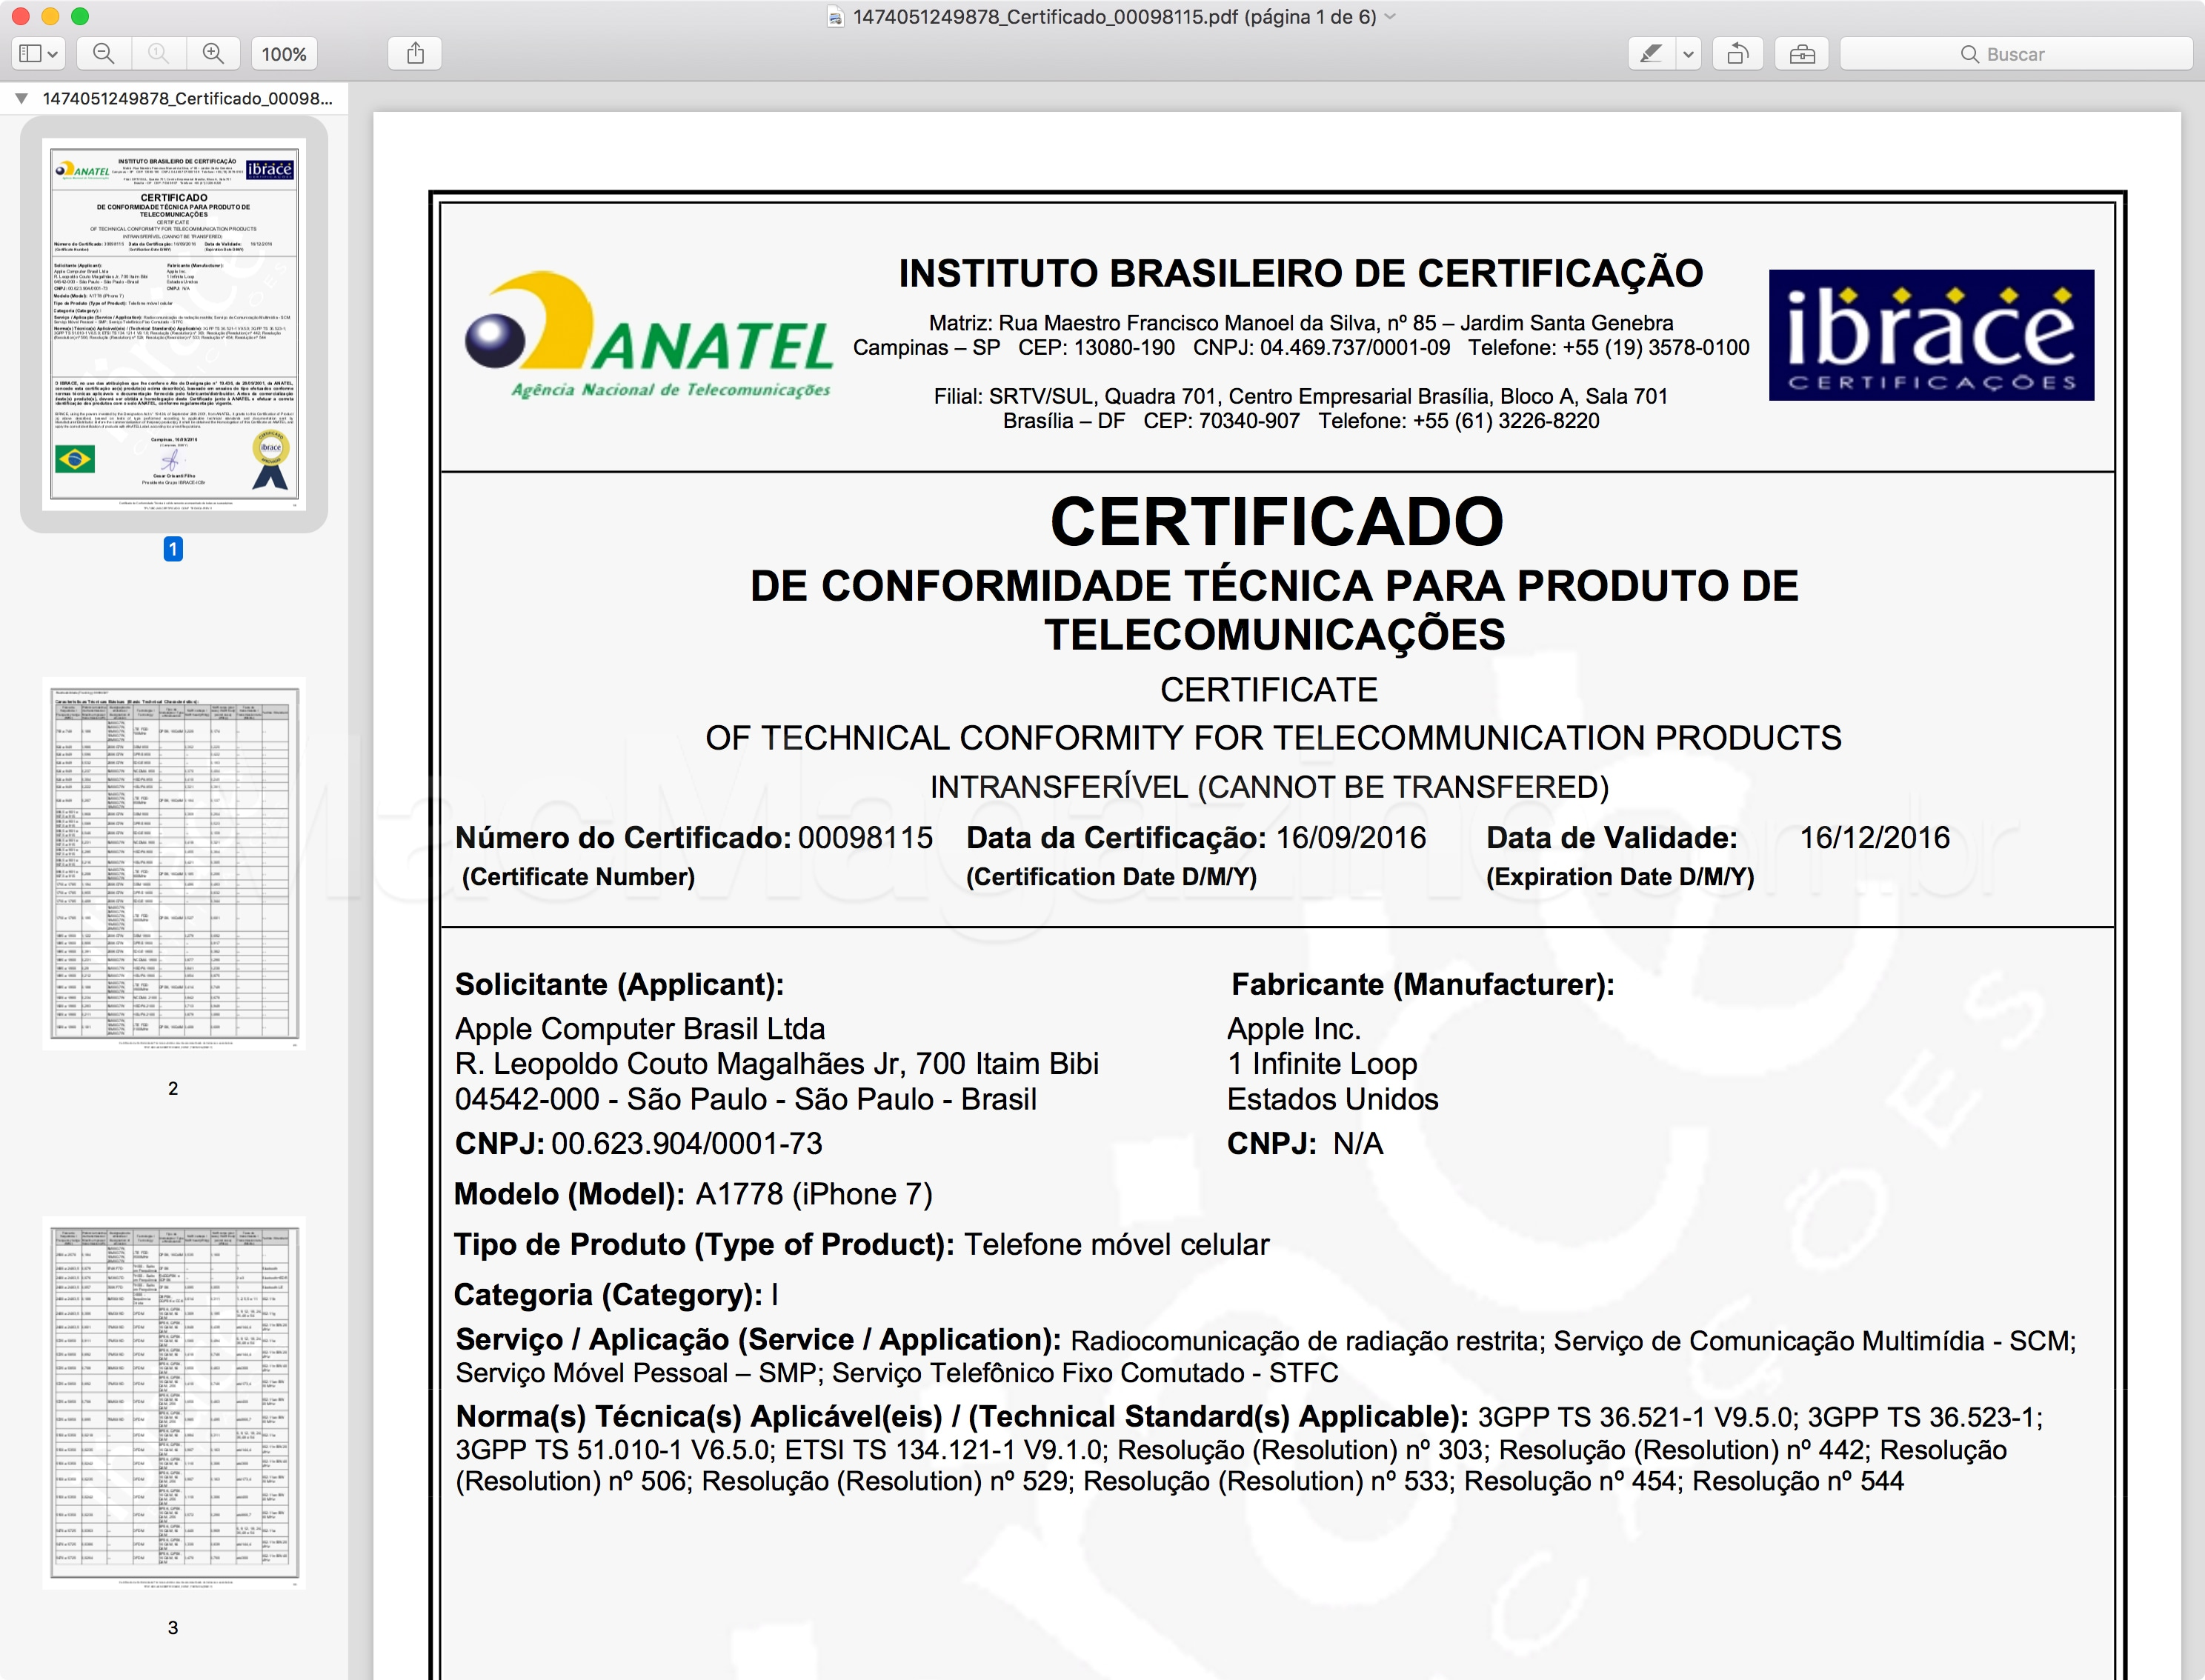 Certificado de Conformidade Técnica do iPhone 7 (A1778)